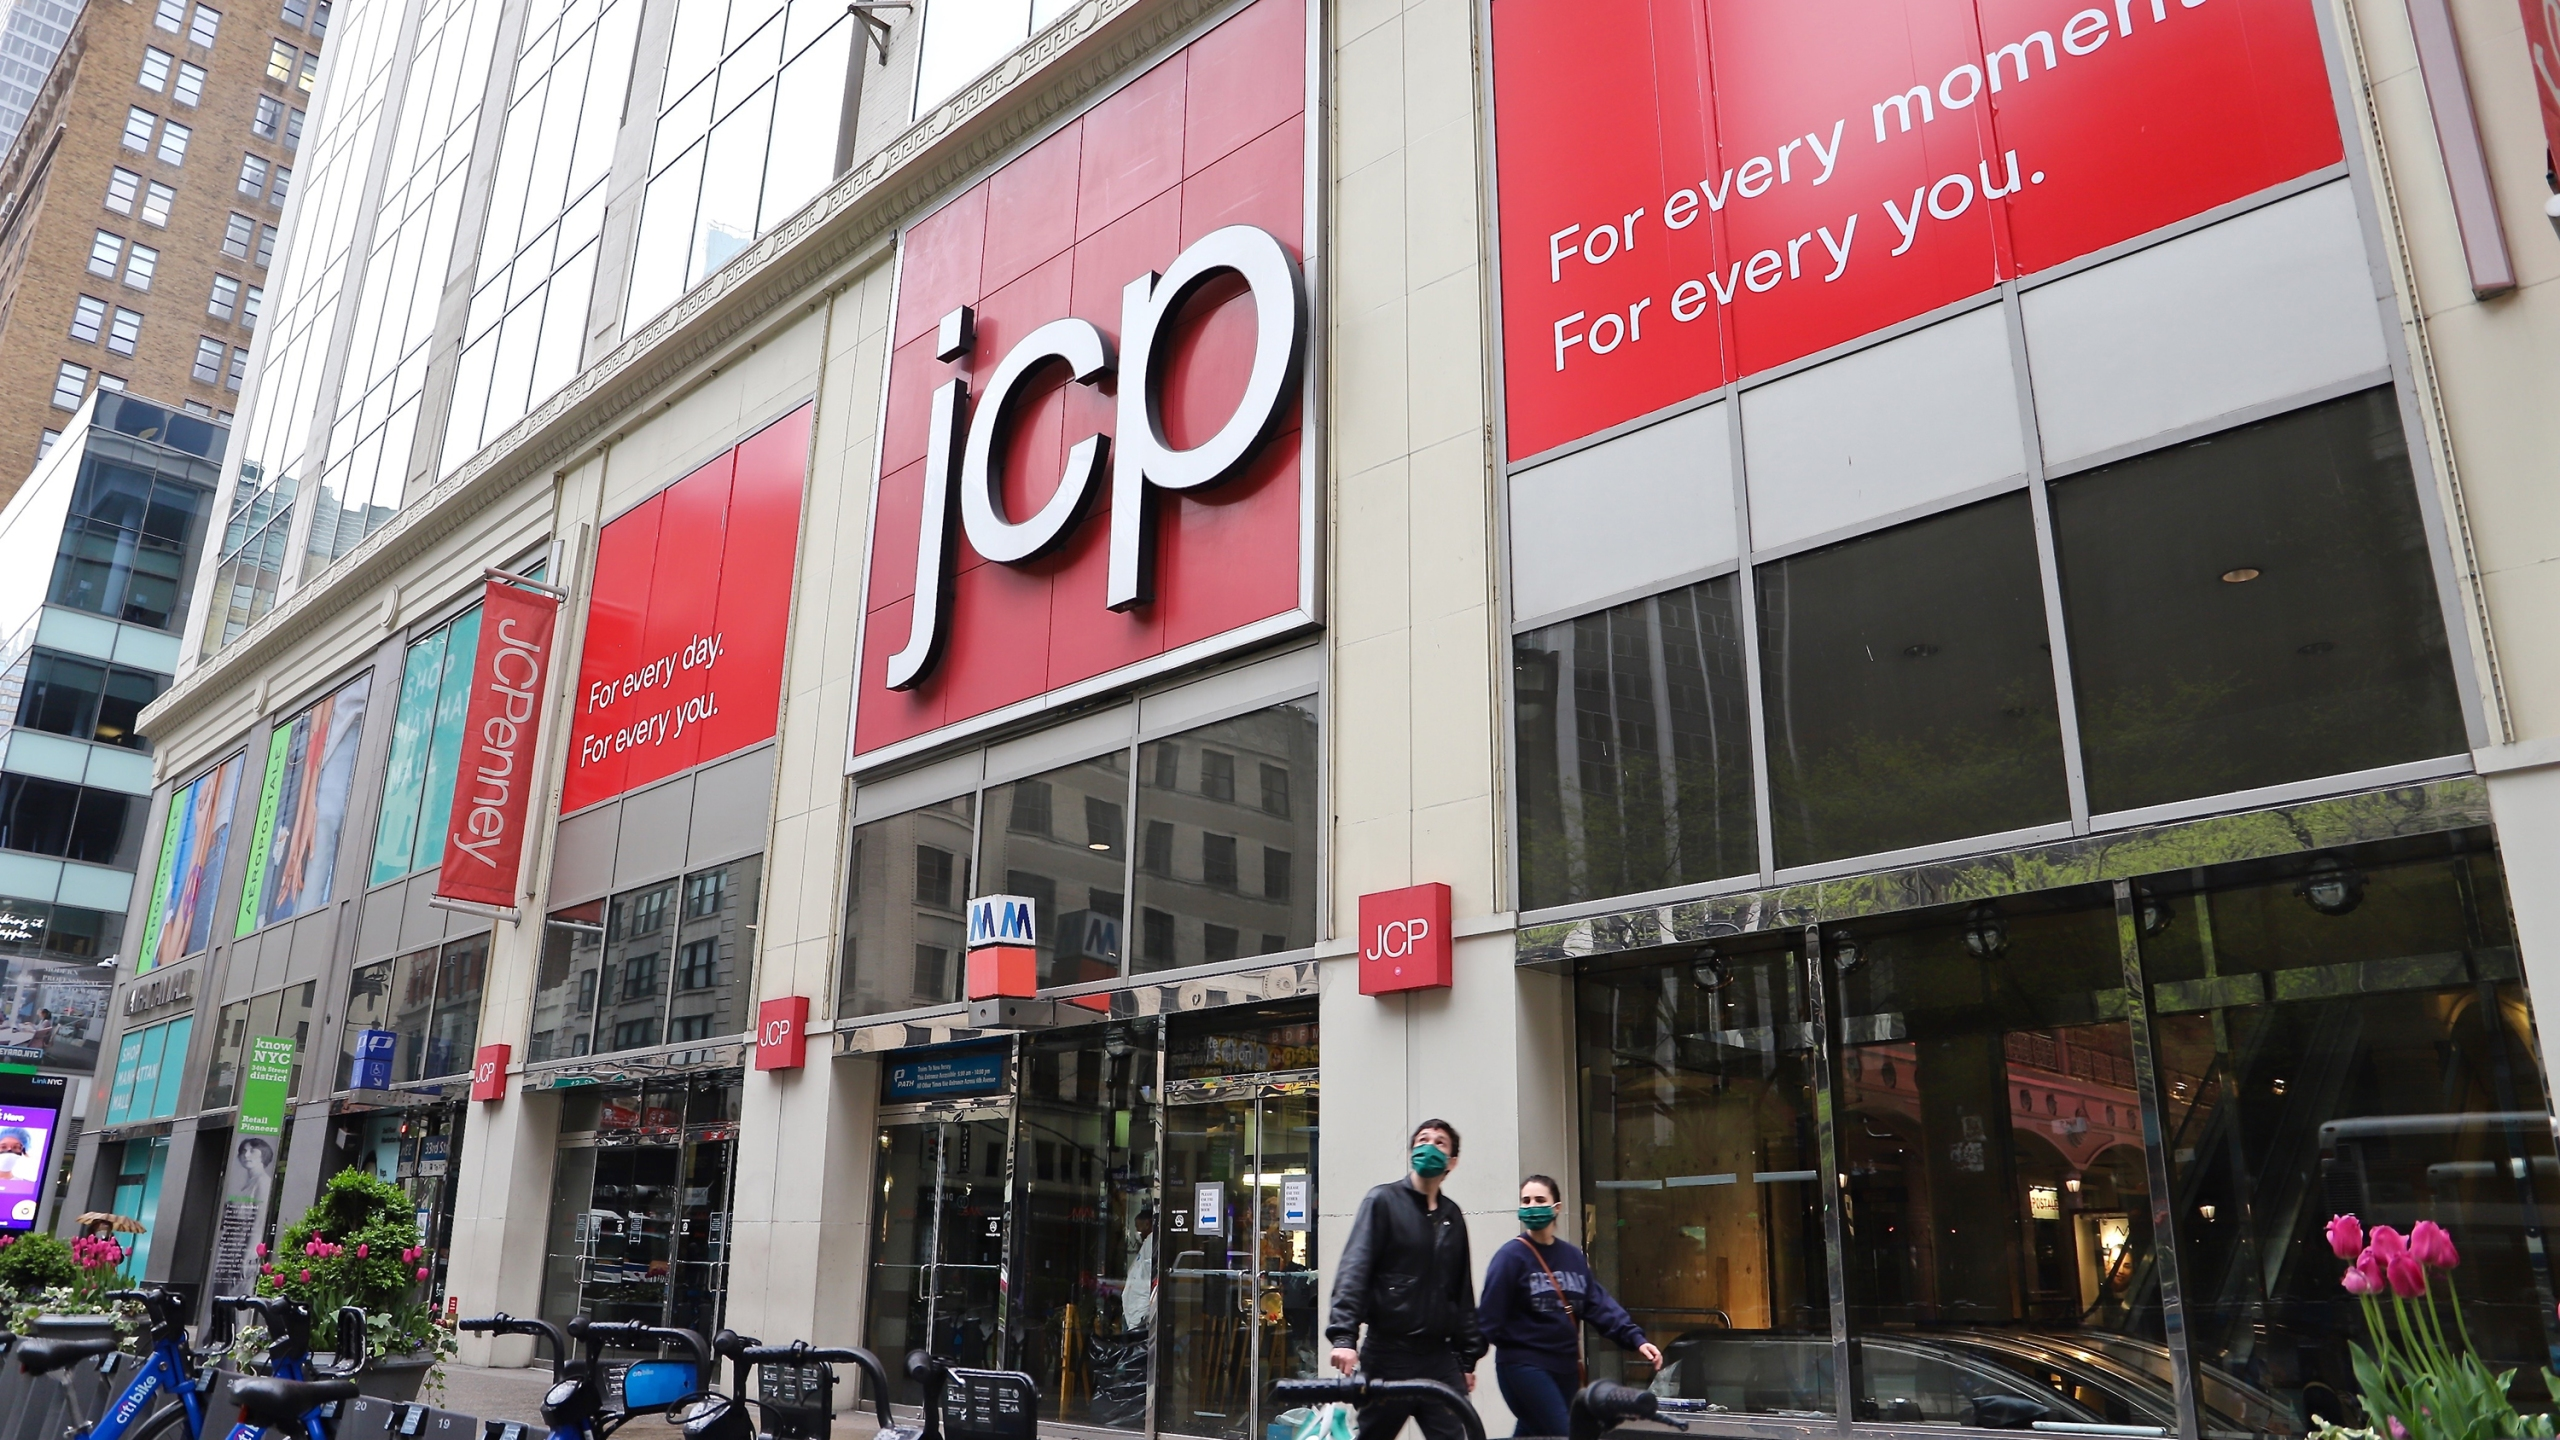 JCPenny (Chie Inoue/Shutterstock)